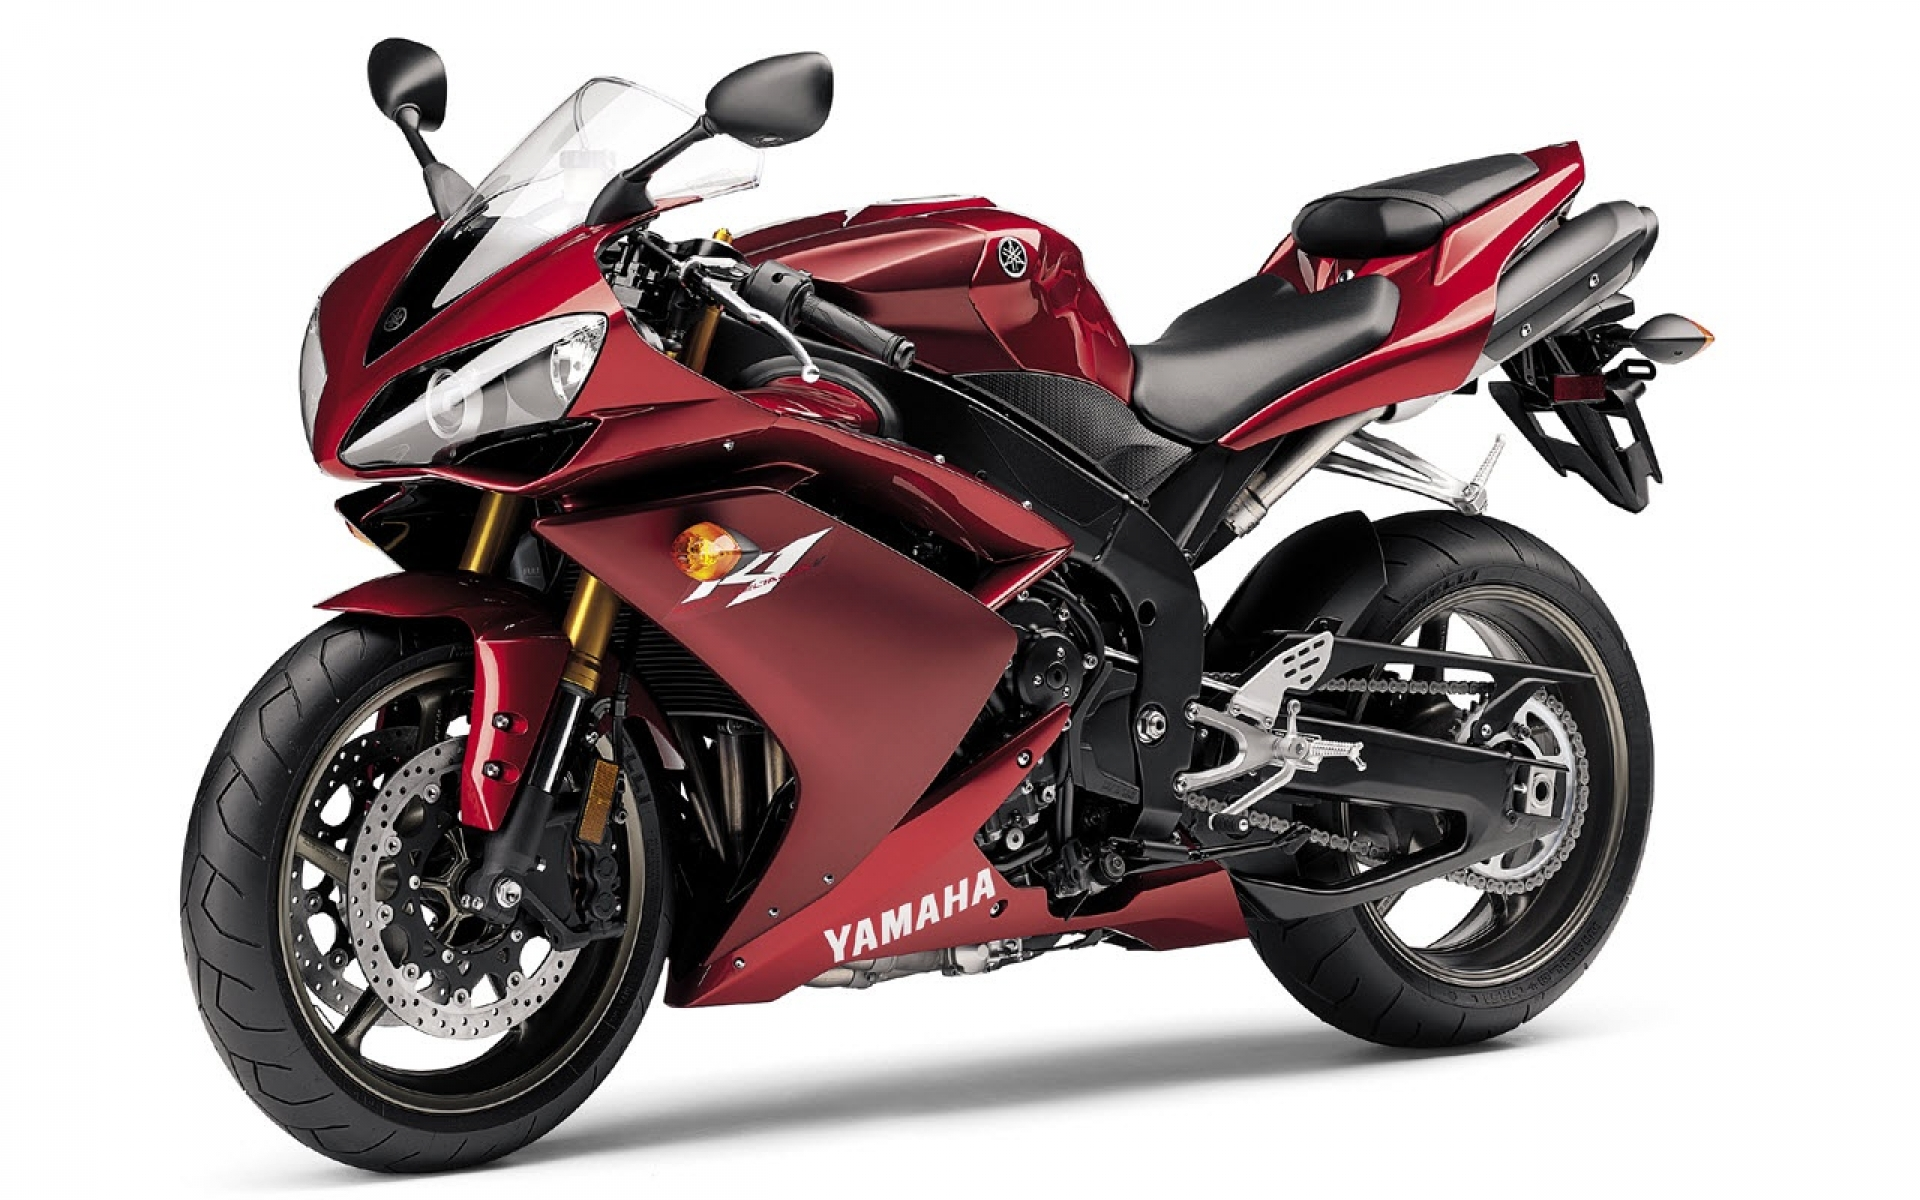 yamaha bike wallpapers hd